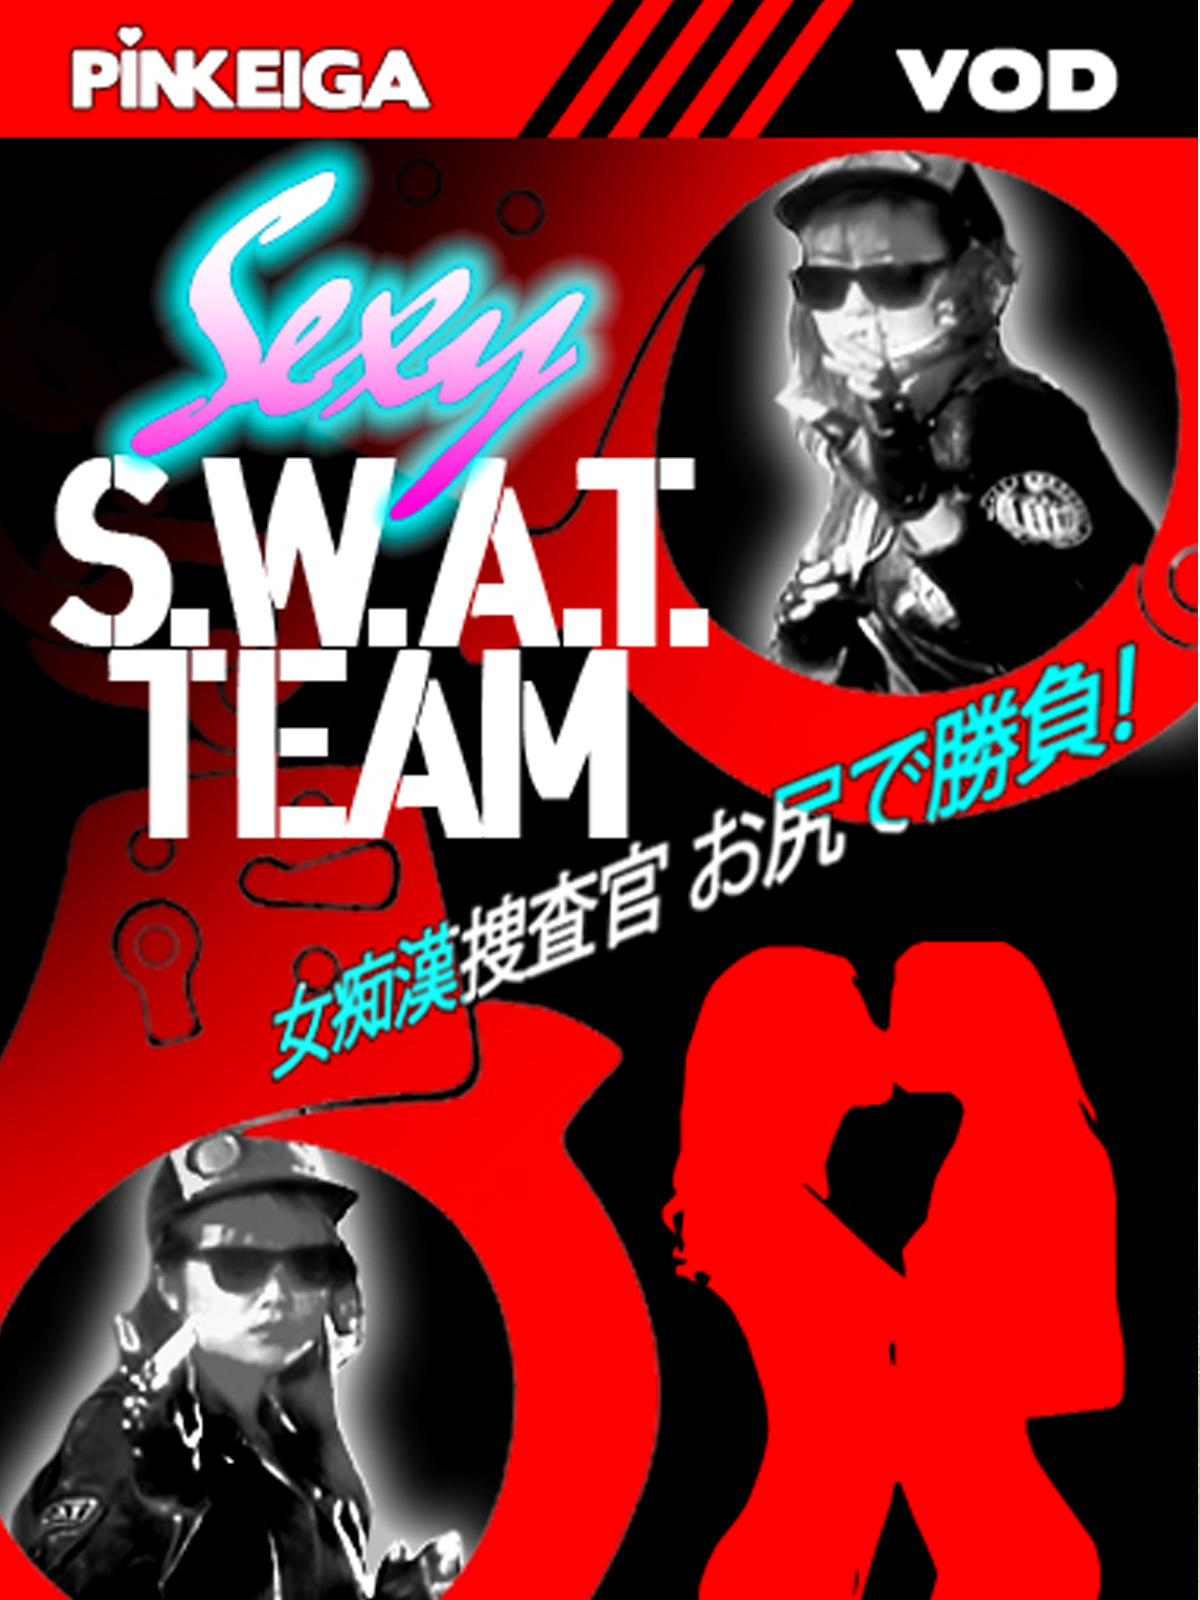 Sexy S.W.A.T. Team -HD- DOWNLOAD TO OWN